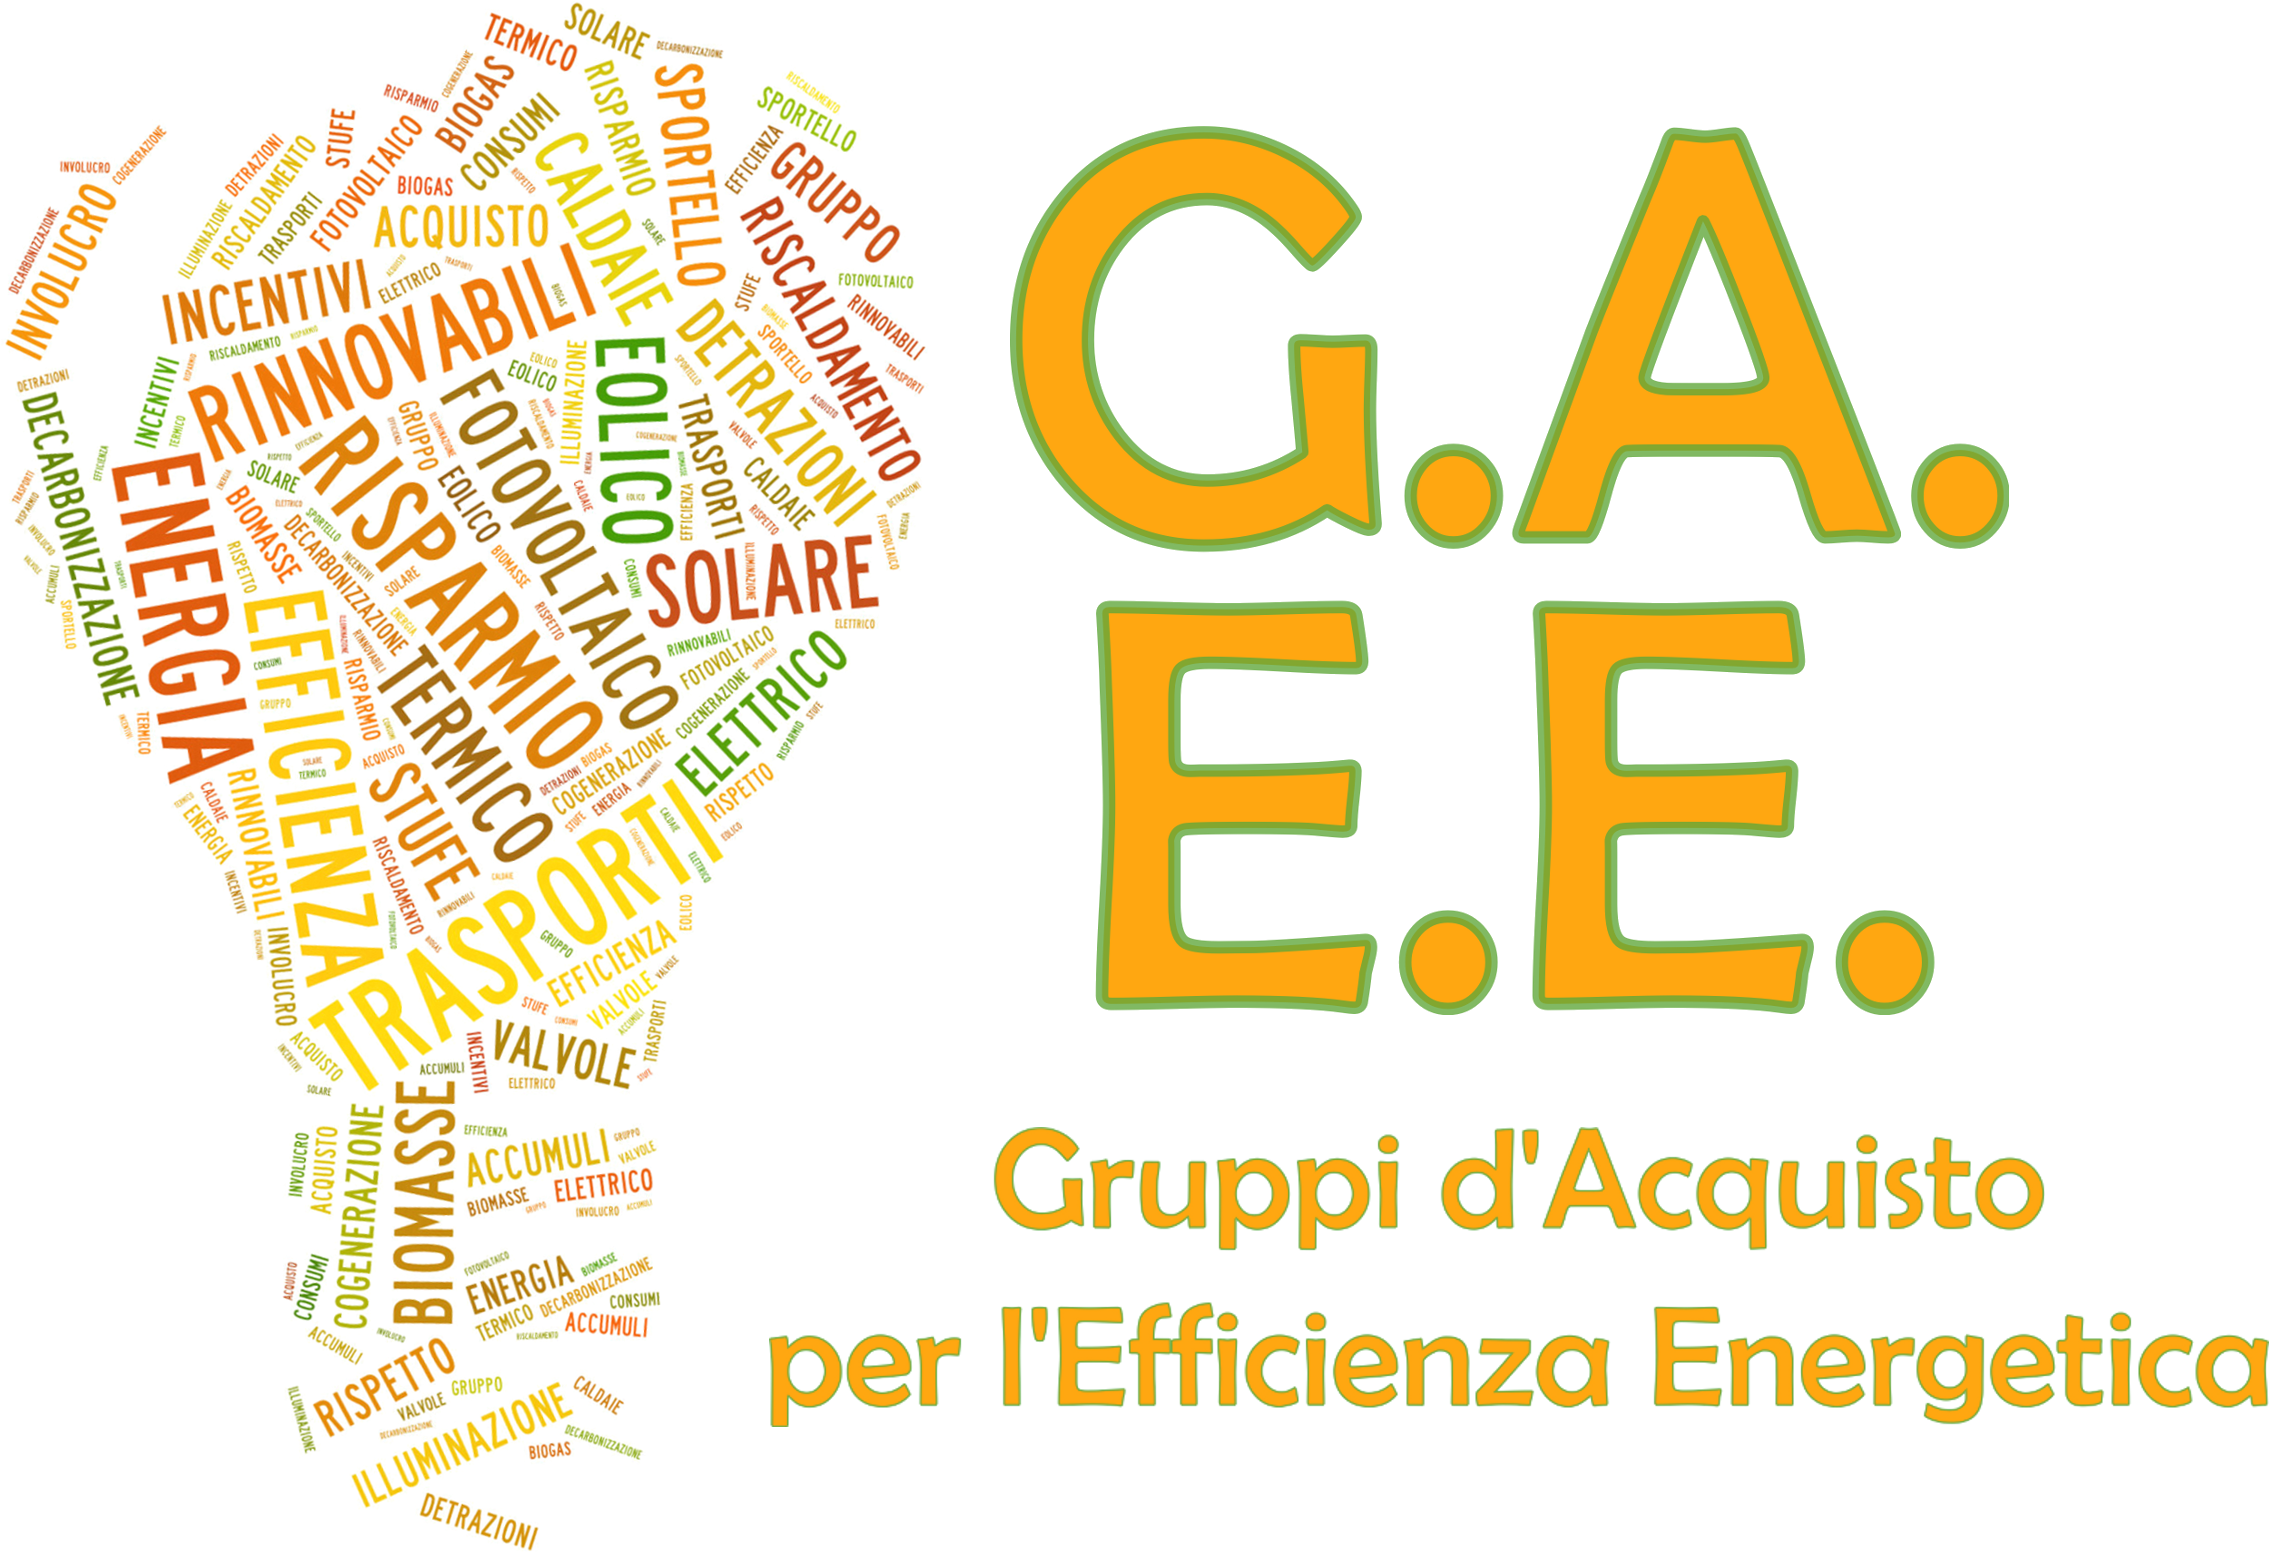 Gruppi d'Acquisto per l'Efficienza Energetica